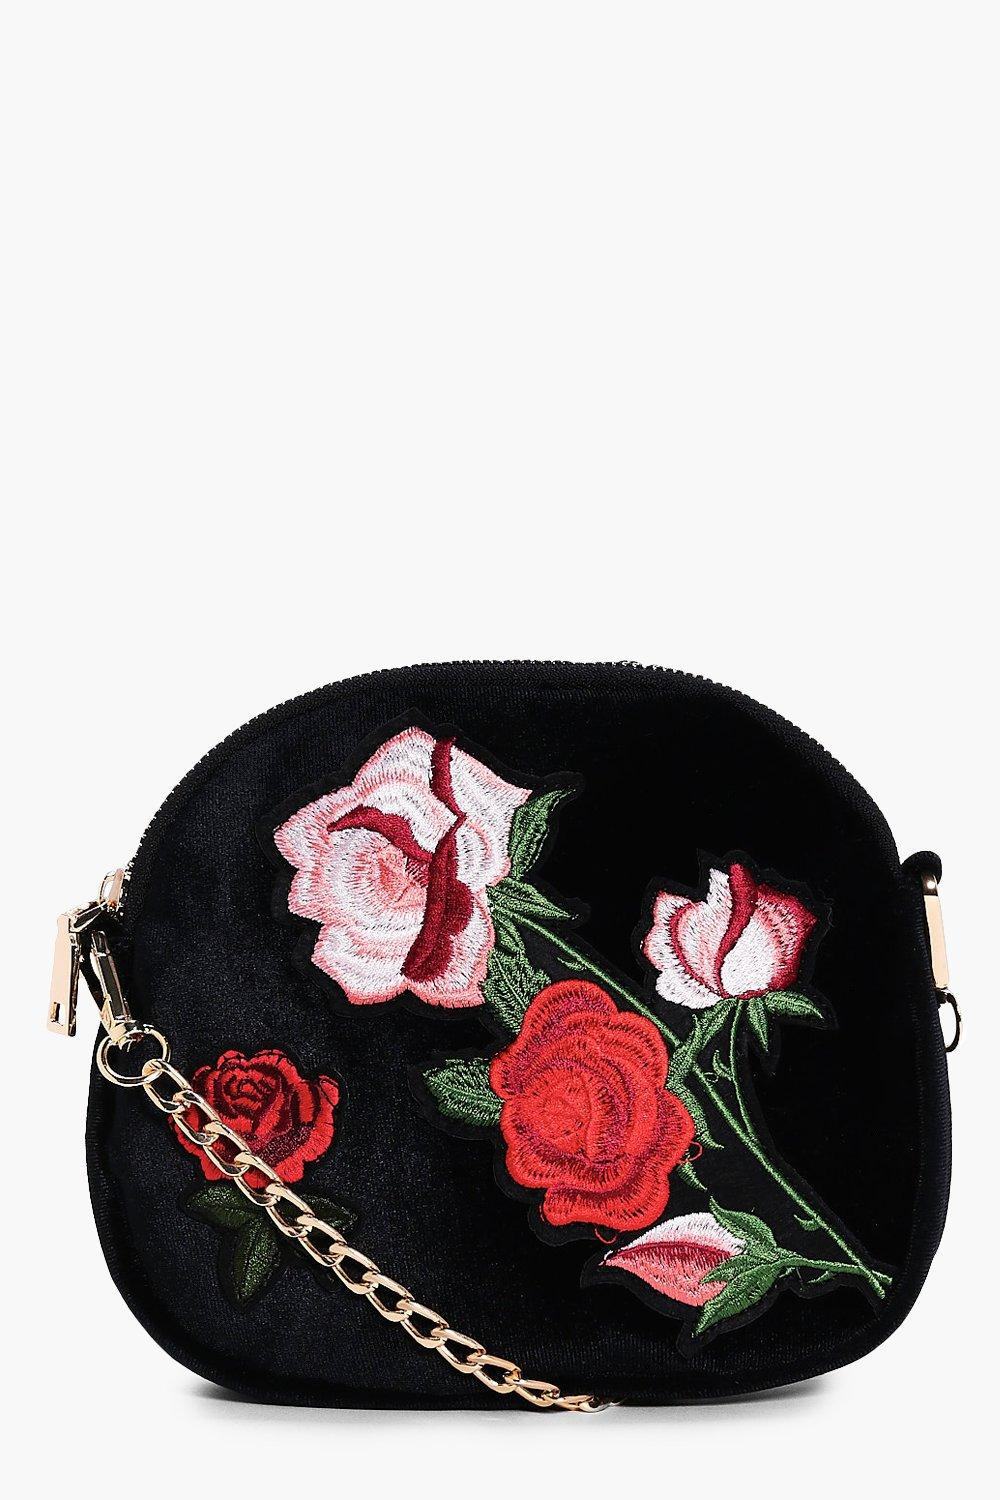 Embroidered Cross Body Bag - pink - Maisie Embroid